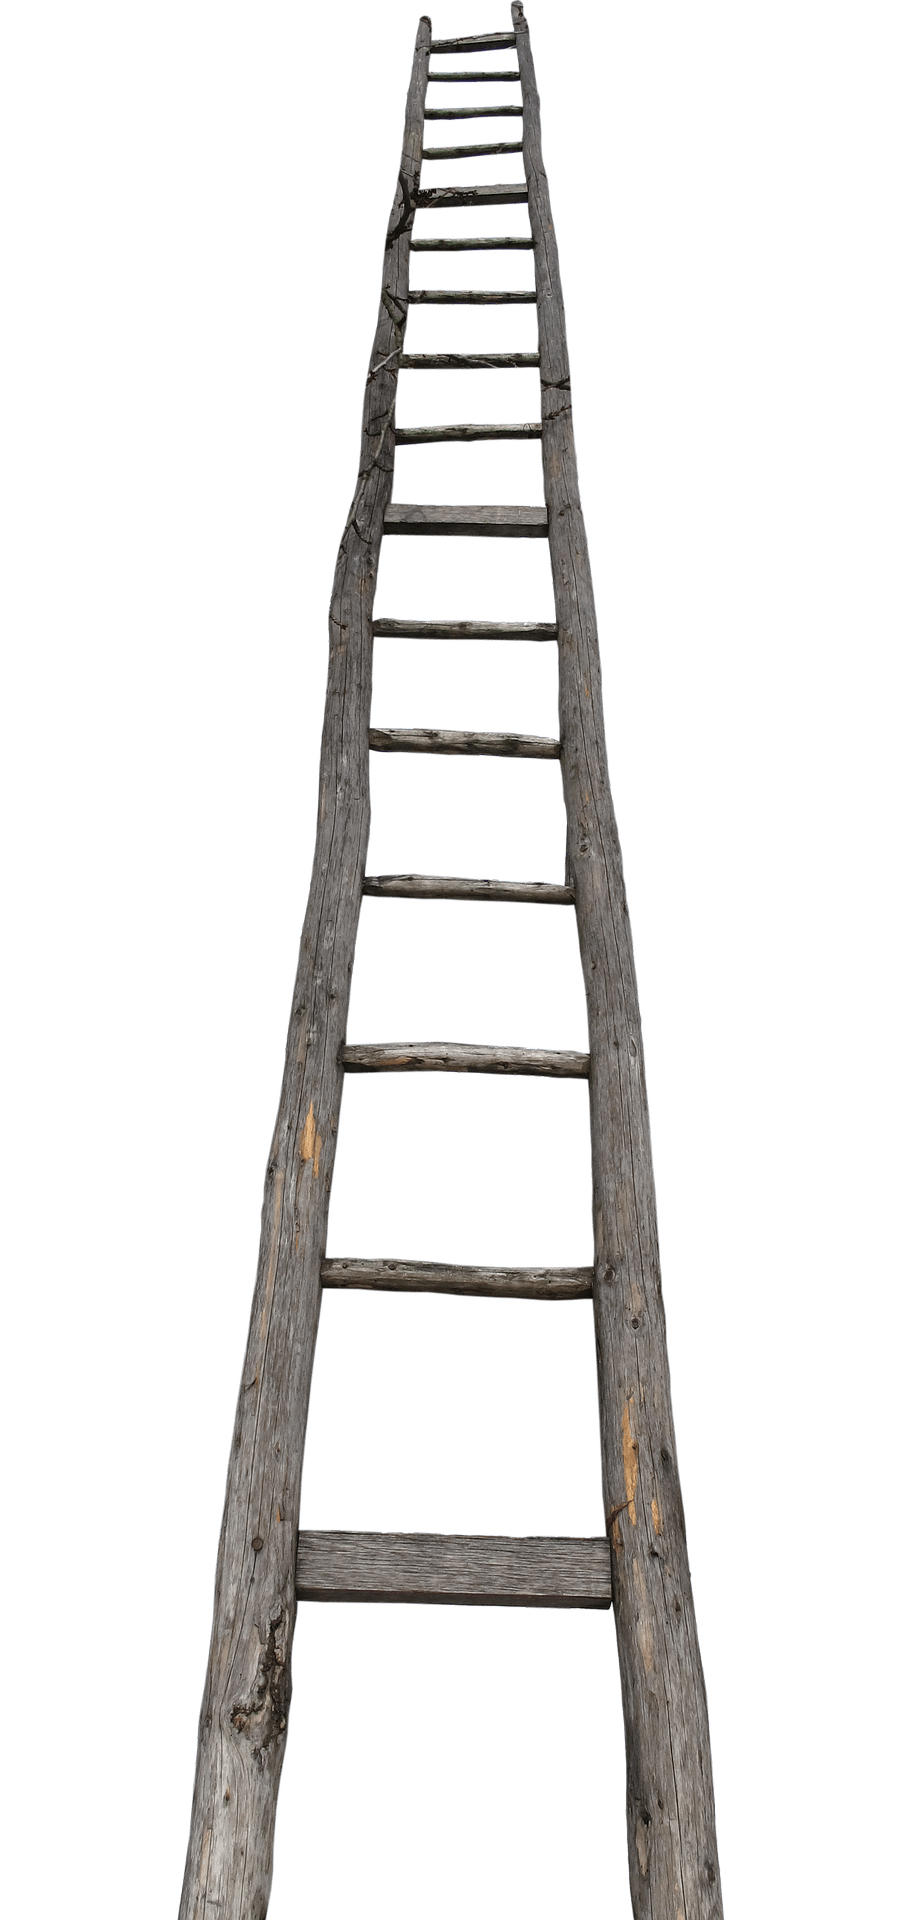 Farming firm fined after ladder fall